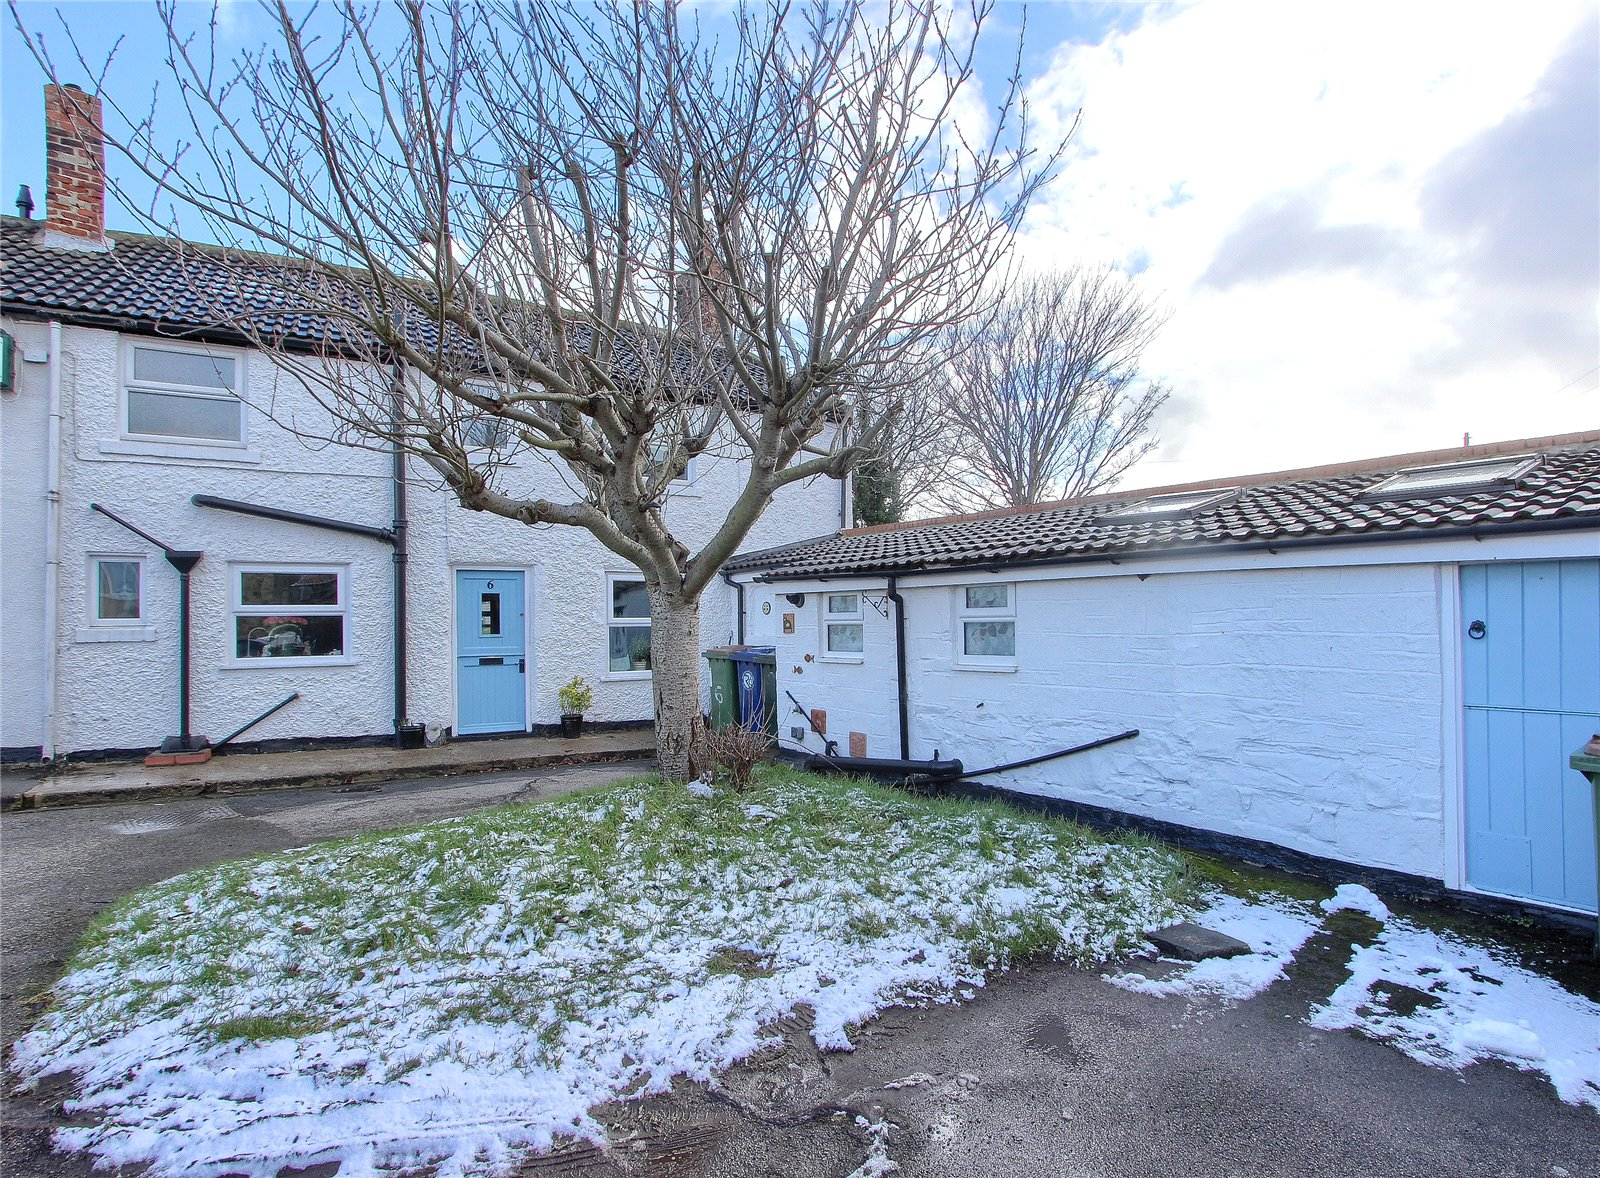 4 bed house for sale in Scrafton Place, Marske-by-the-Sea 1